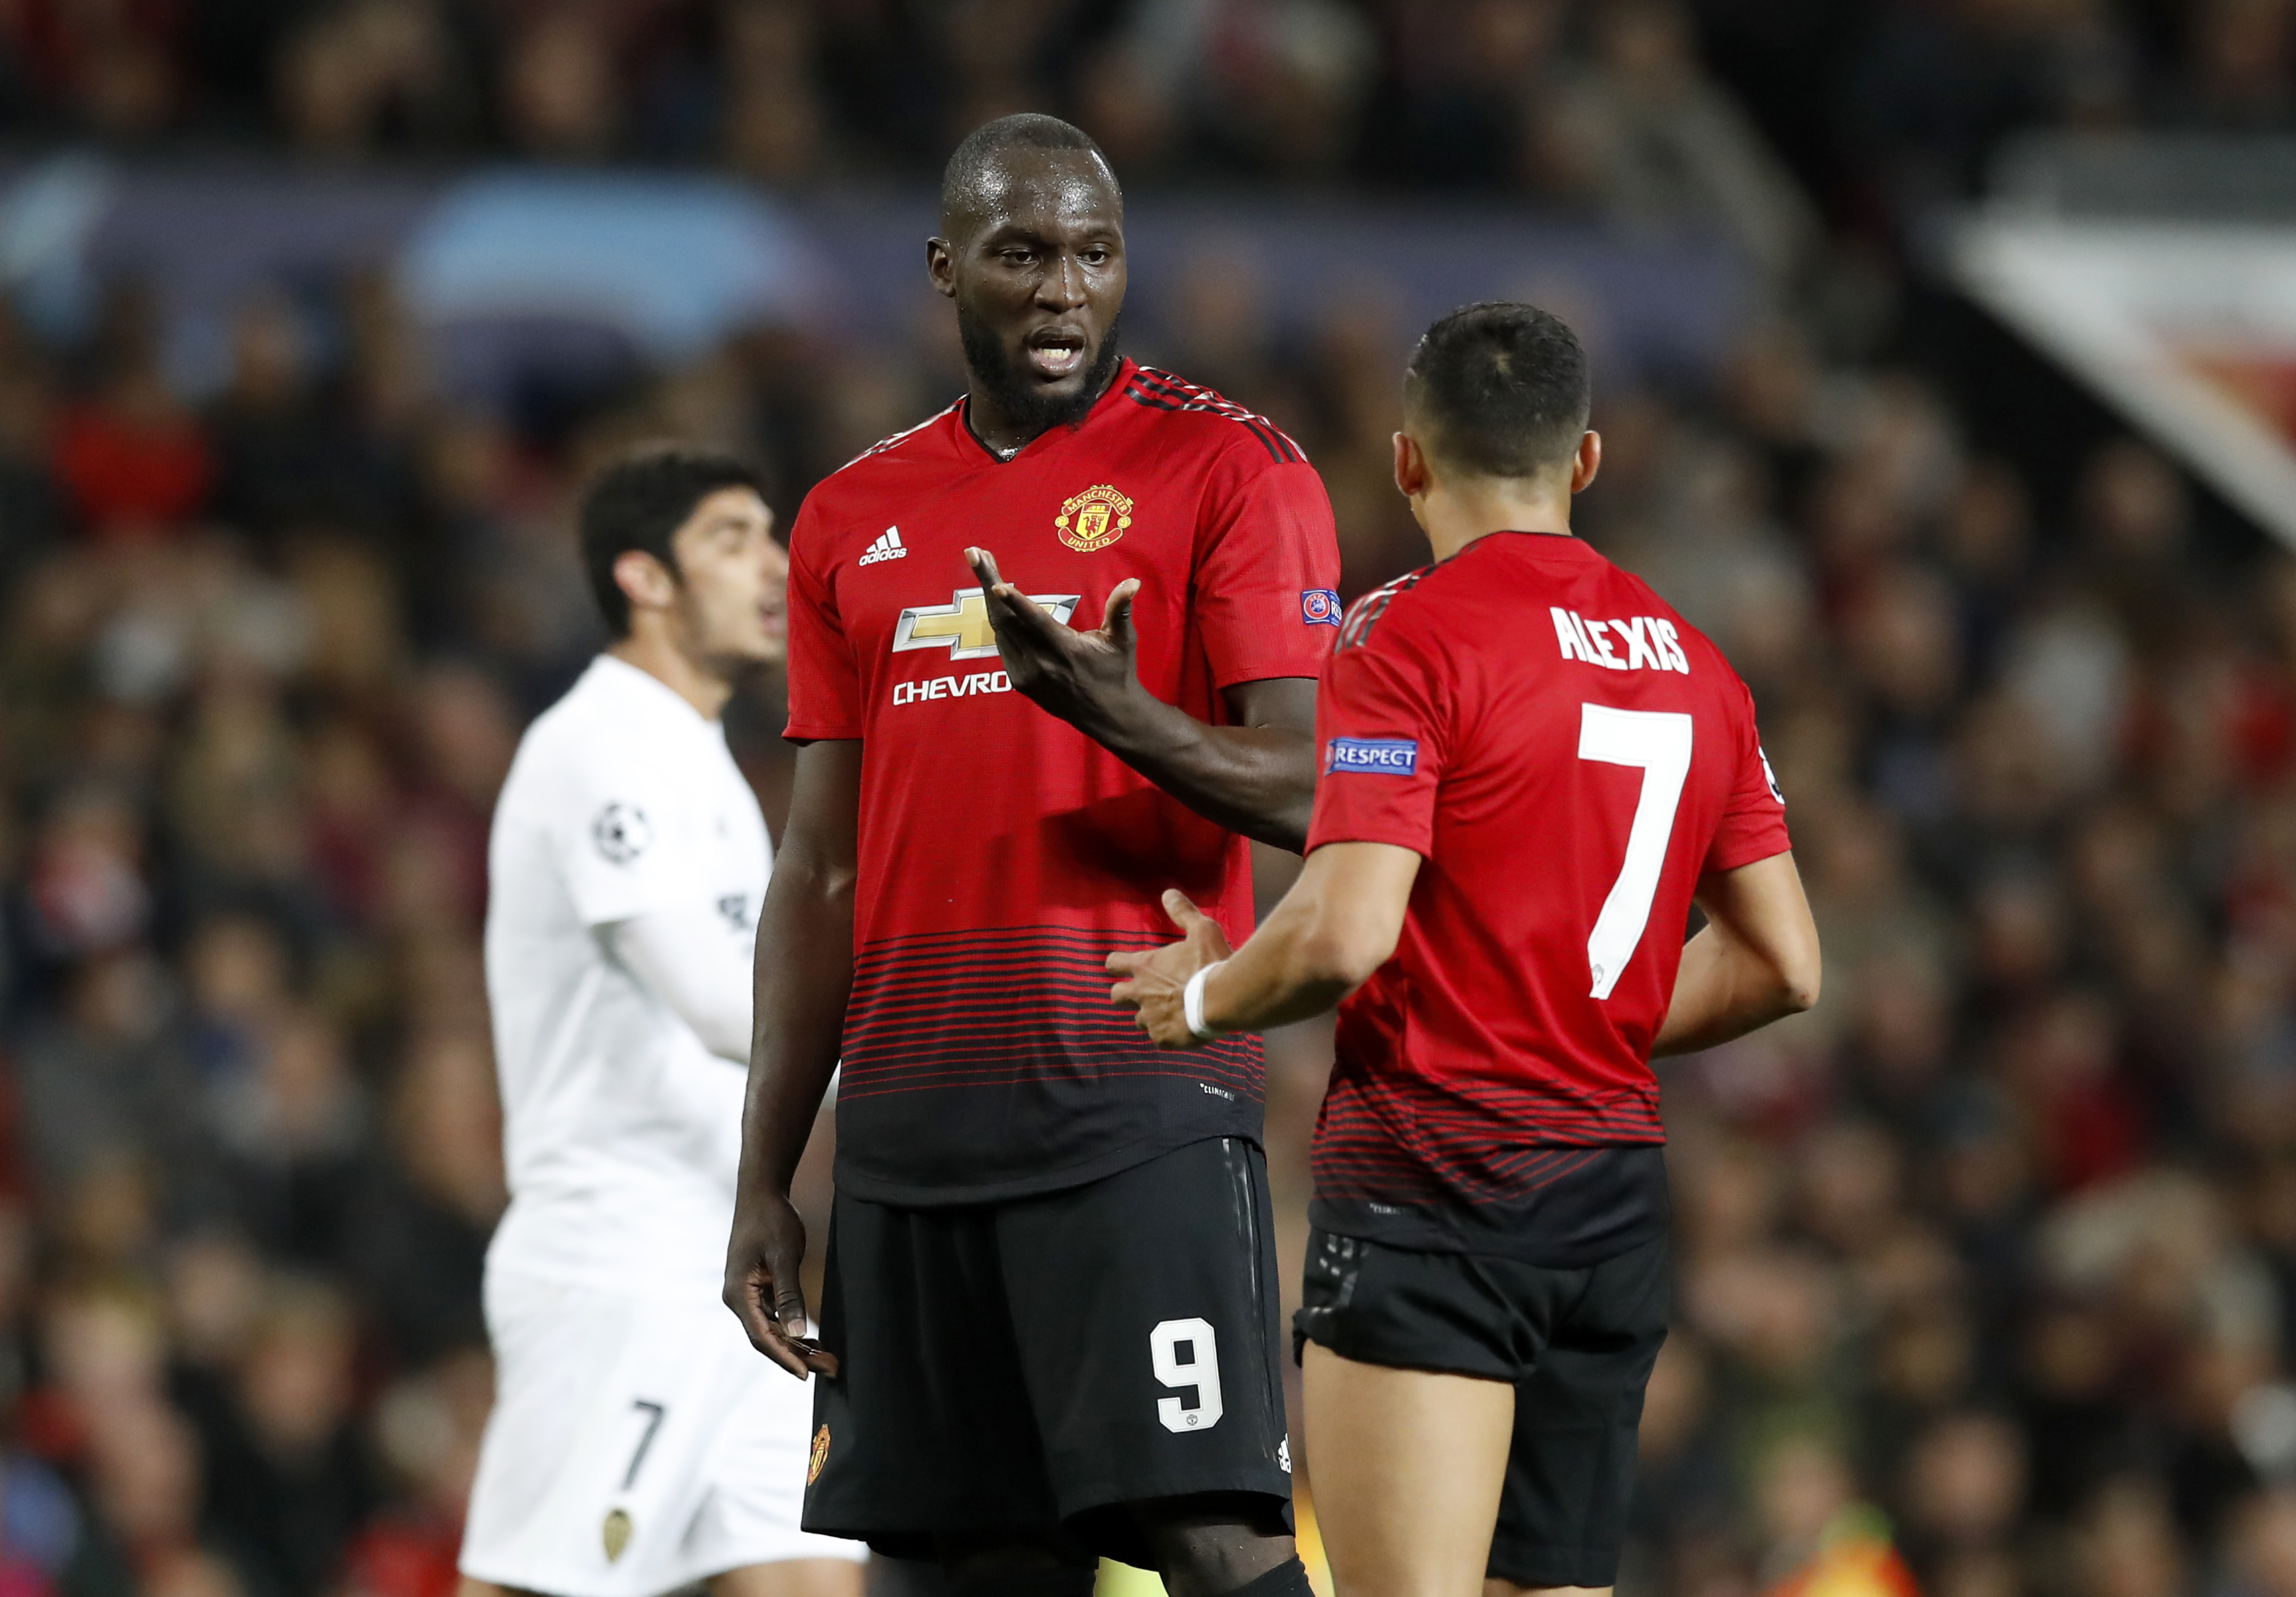 Solskjaer on Lukaku missing friendly match against Leeds United